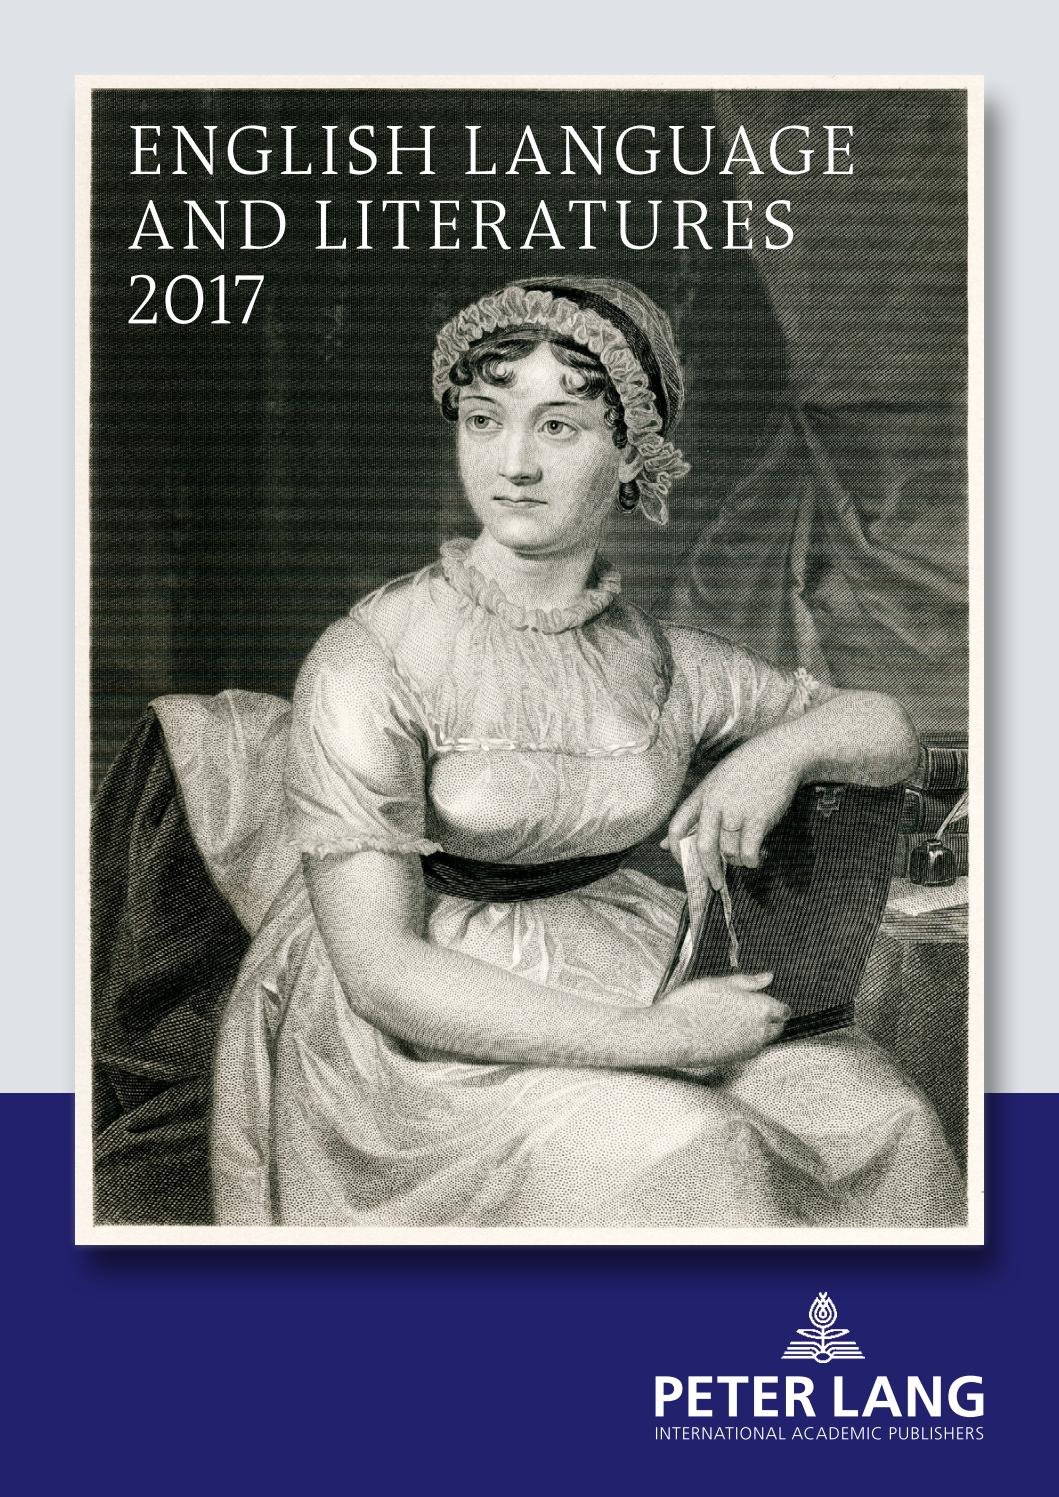 English Language and Literatures Catalogue 2017 by Peter